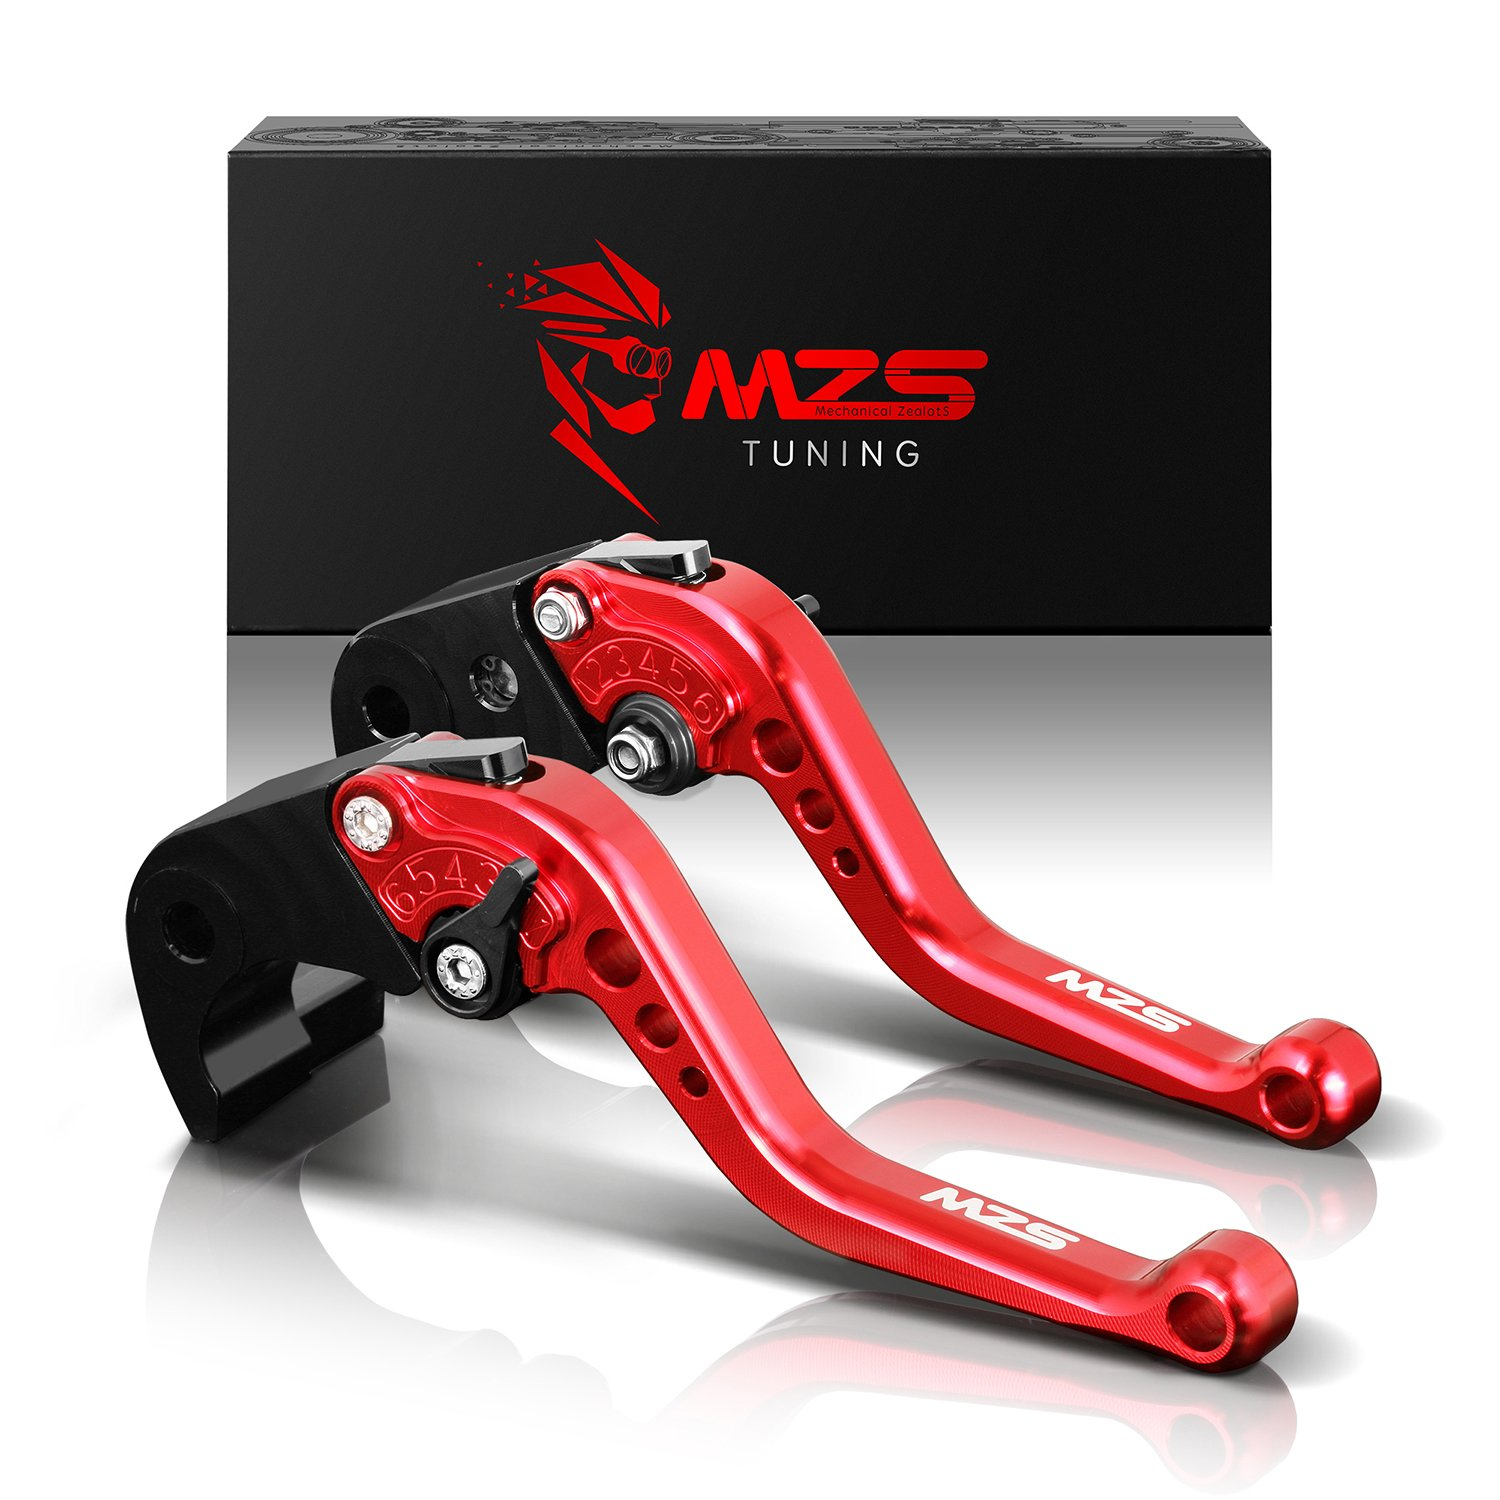 MZS Short Brake Clutch Levers for Yamaha FZ-09 MT-09 SR 2014-2018/ SCR950 2017-2018/ XJ6 DIVERSION 2009-2015/ XSR 700 ABS 2016-2018/ XSR 900 ABS 2016-2018/ XV 950 Racer 2016-2018 Red by MZS